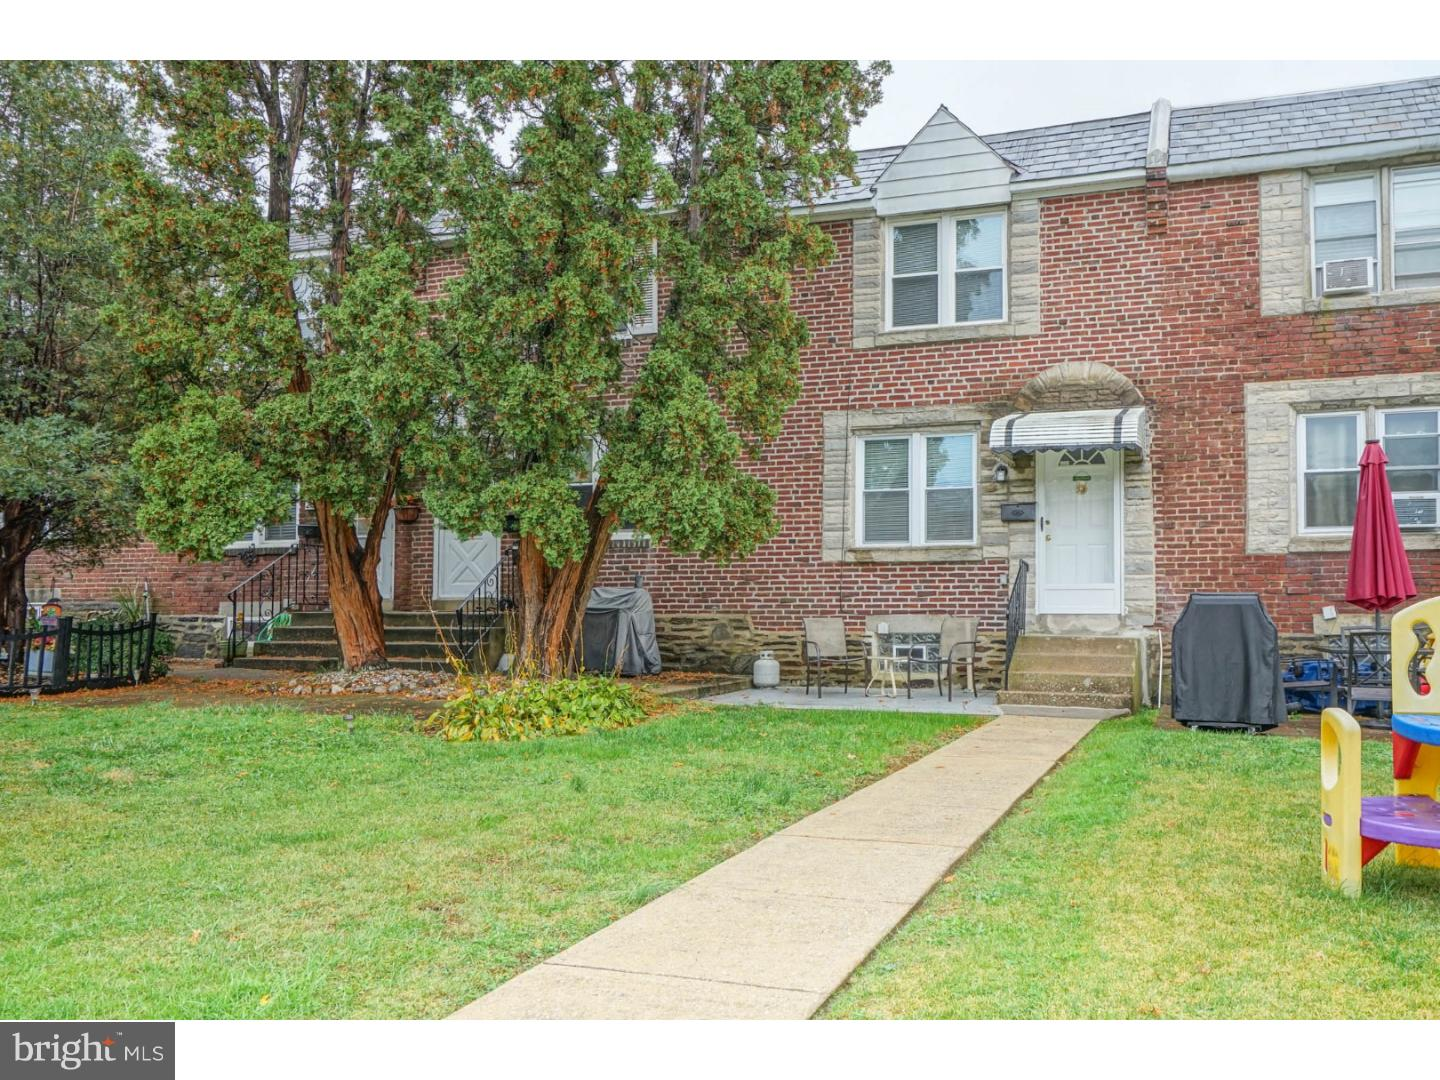 2228 Ardmore Avenue Drexel Hill, PA 19026